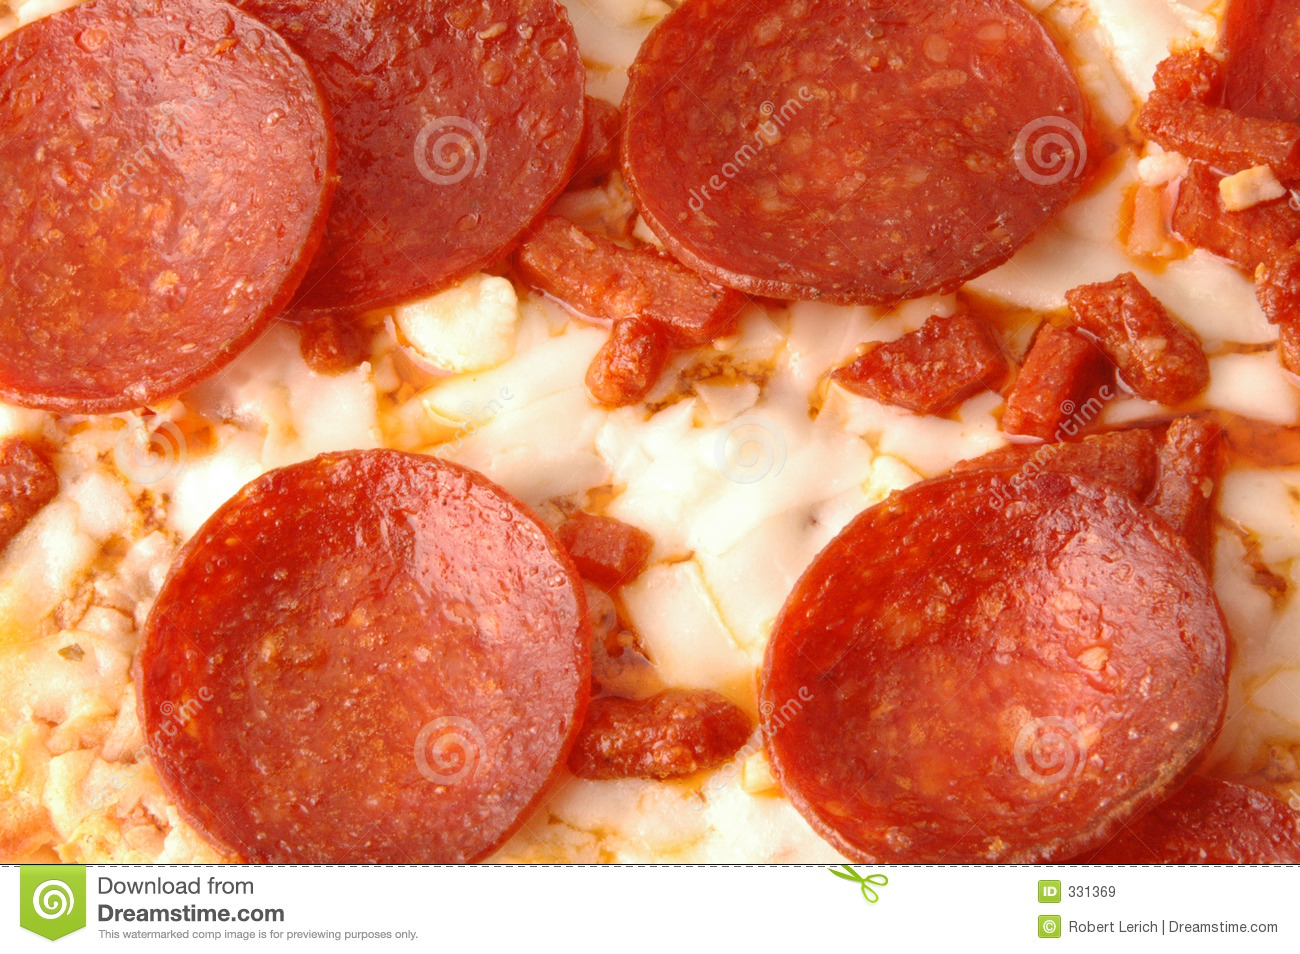 Pepperoni Pie 594 Royalty Free Stock Images - Image: 331369